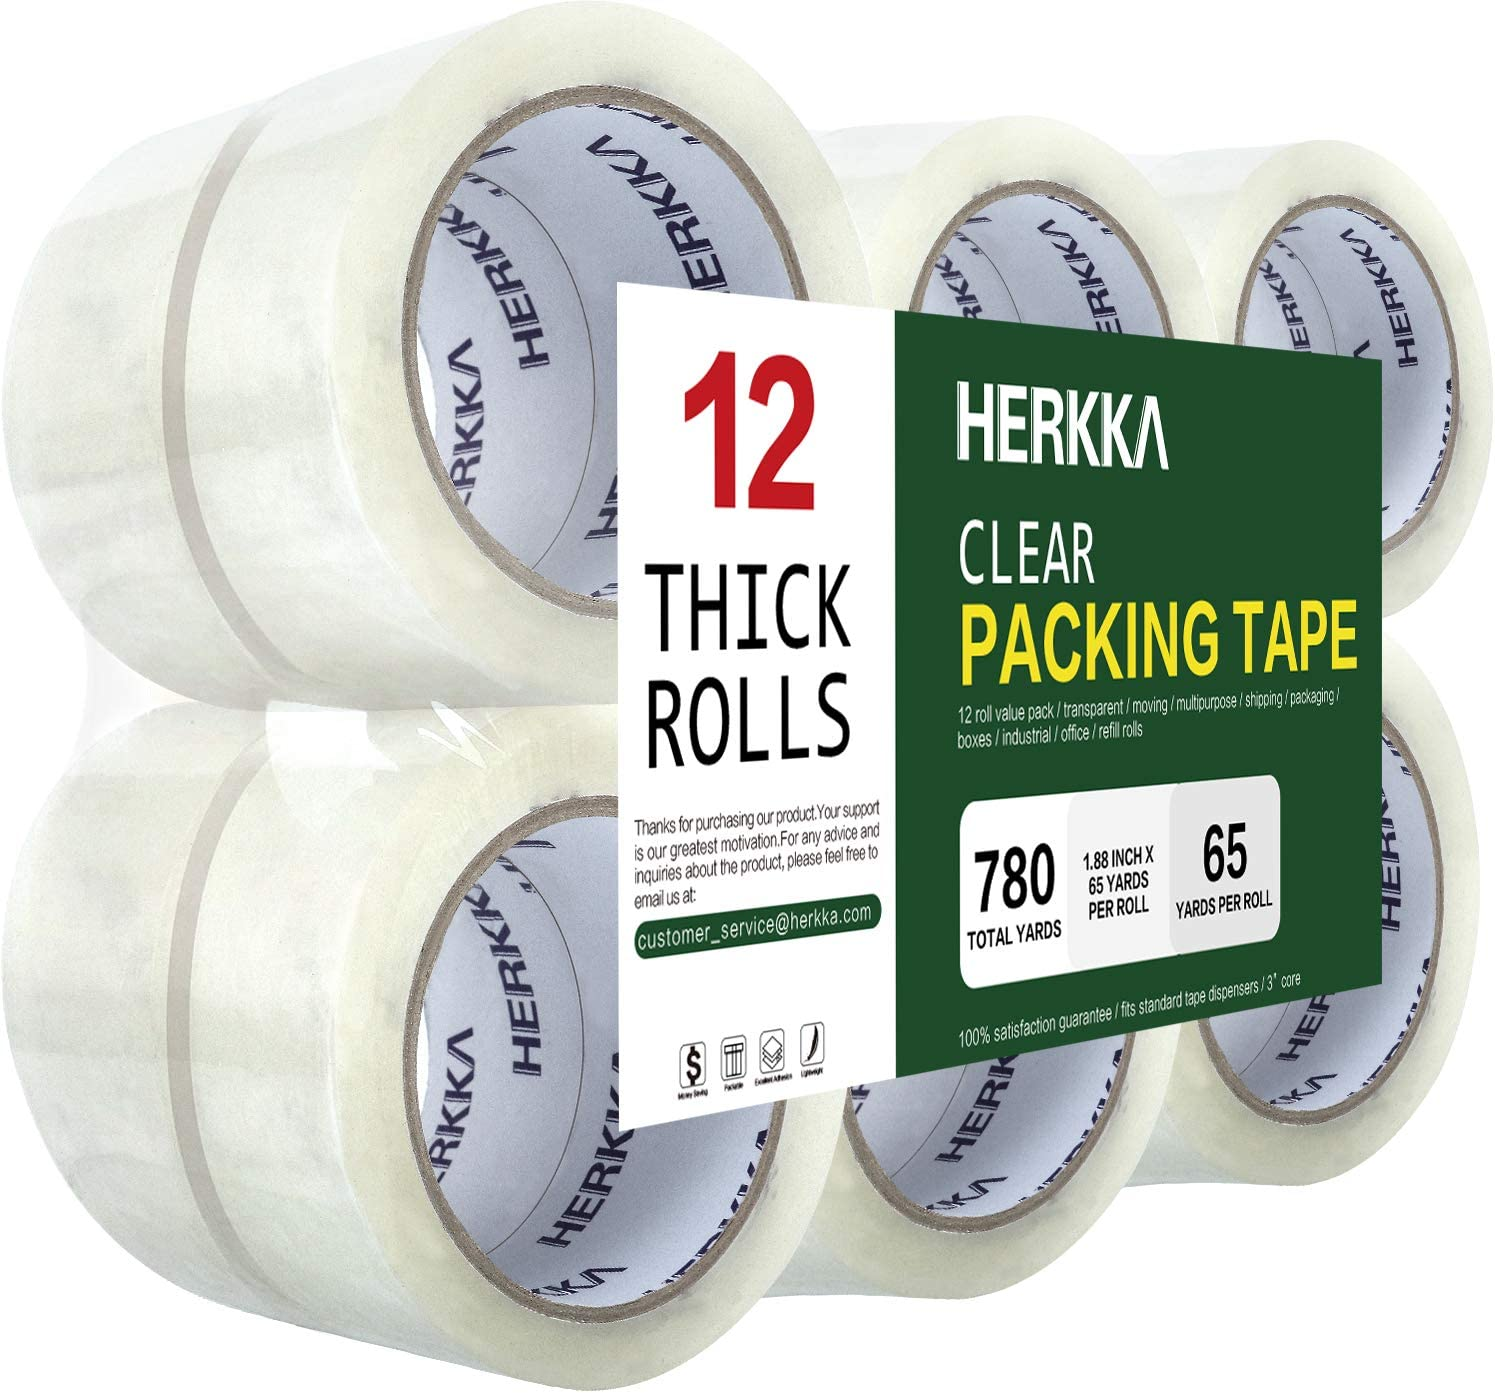 Clear Packing Tape, HERKKA 12 Rolls Heavy Duty Packaging Tape for Shipping Packaging Moving Sealing, Thicker Clear Packing Tape, 1.88 inches Wide, 65 Yards Per Roll, 780 Total Yards